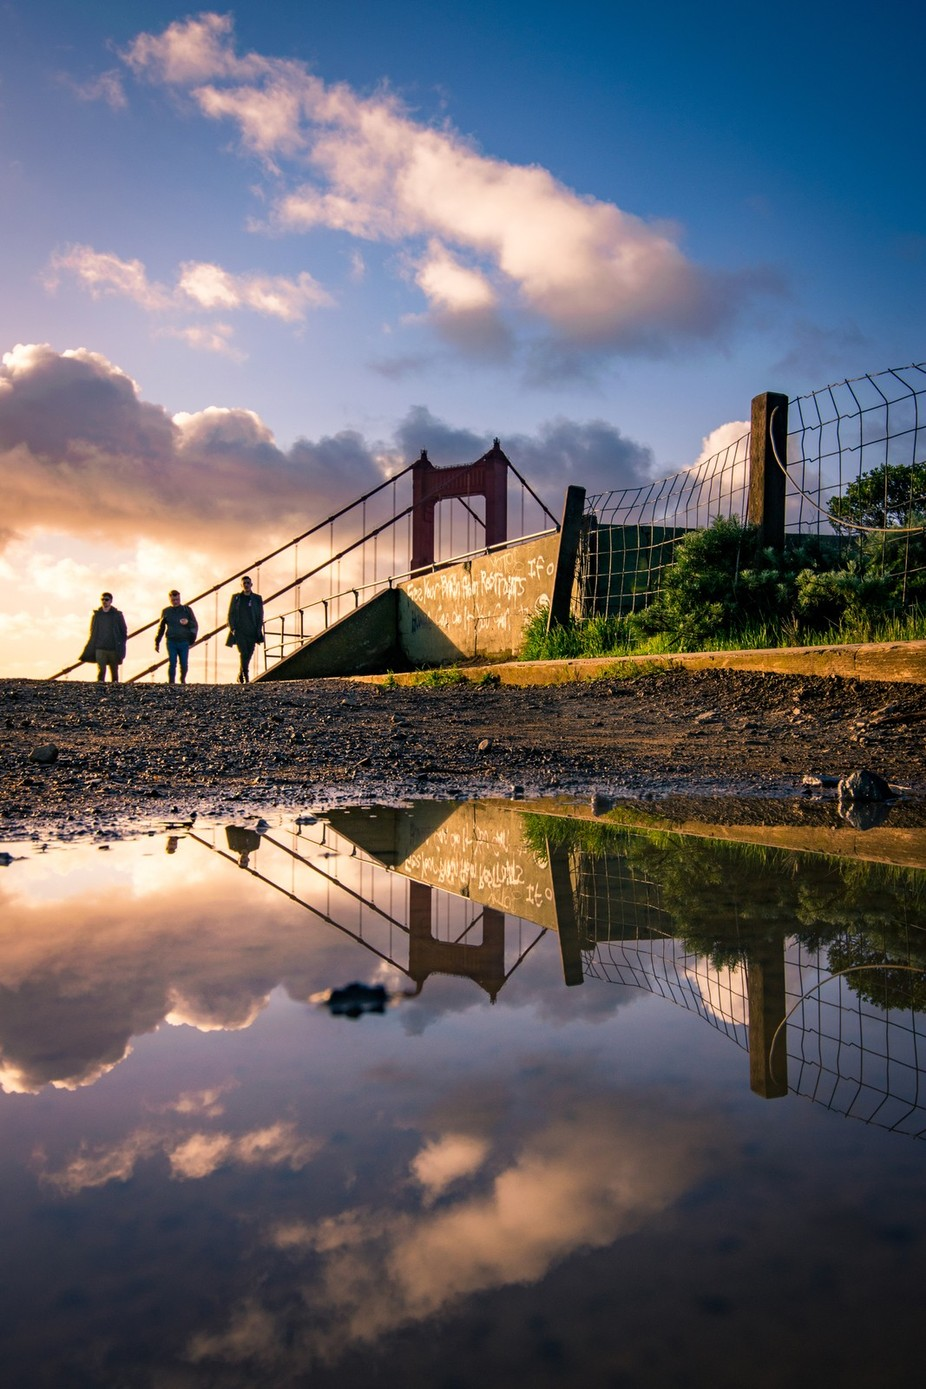 San Fran Reflections  by teddymorrow - Sunset And The City Photo Contest